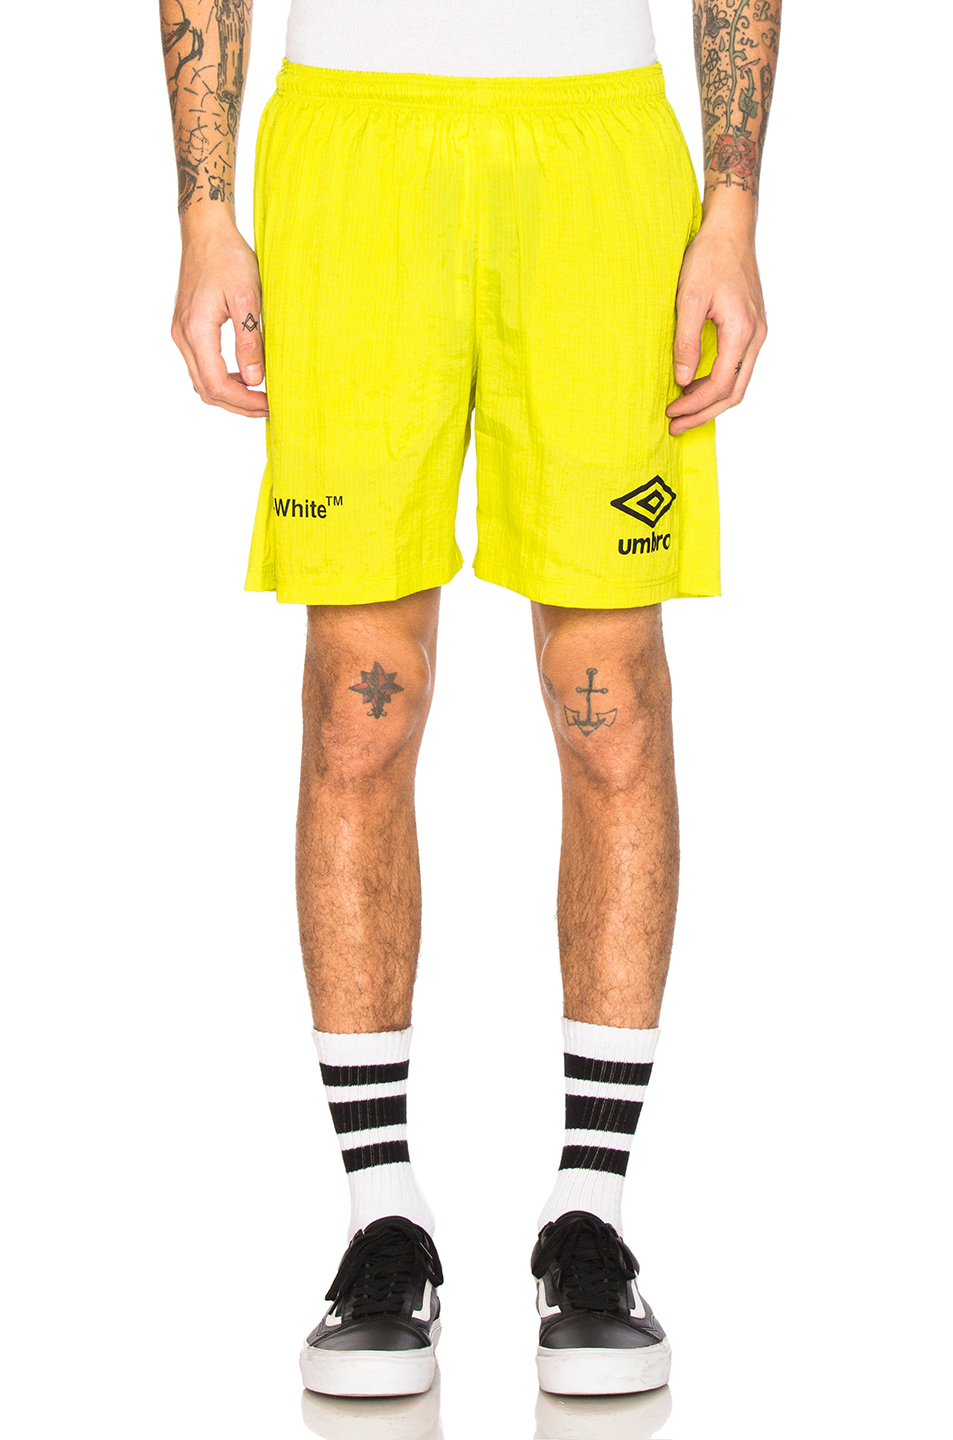 OFF-WHITE x Umbro Ripstop Shorts in Green,Neon